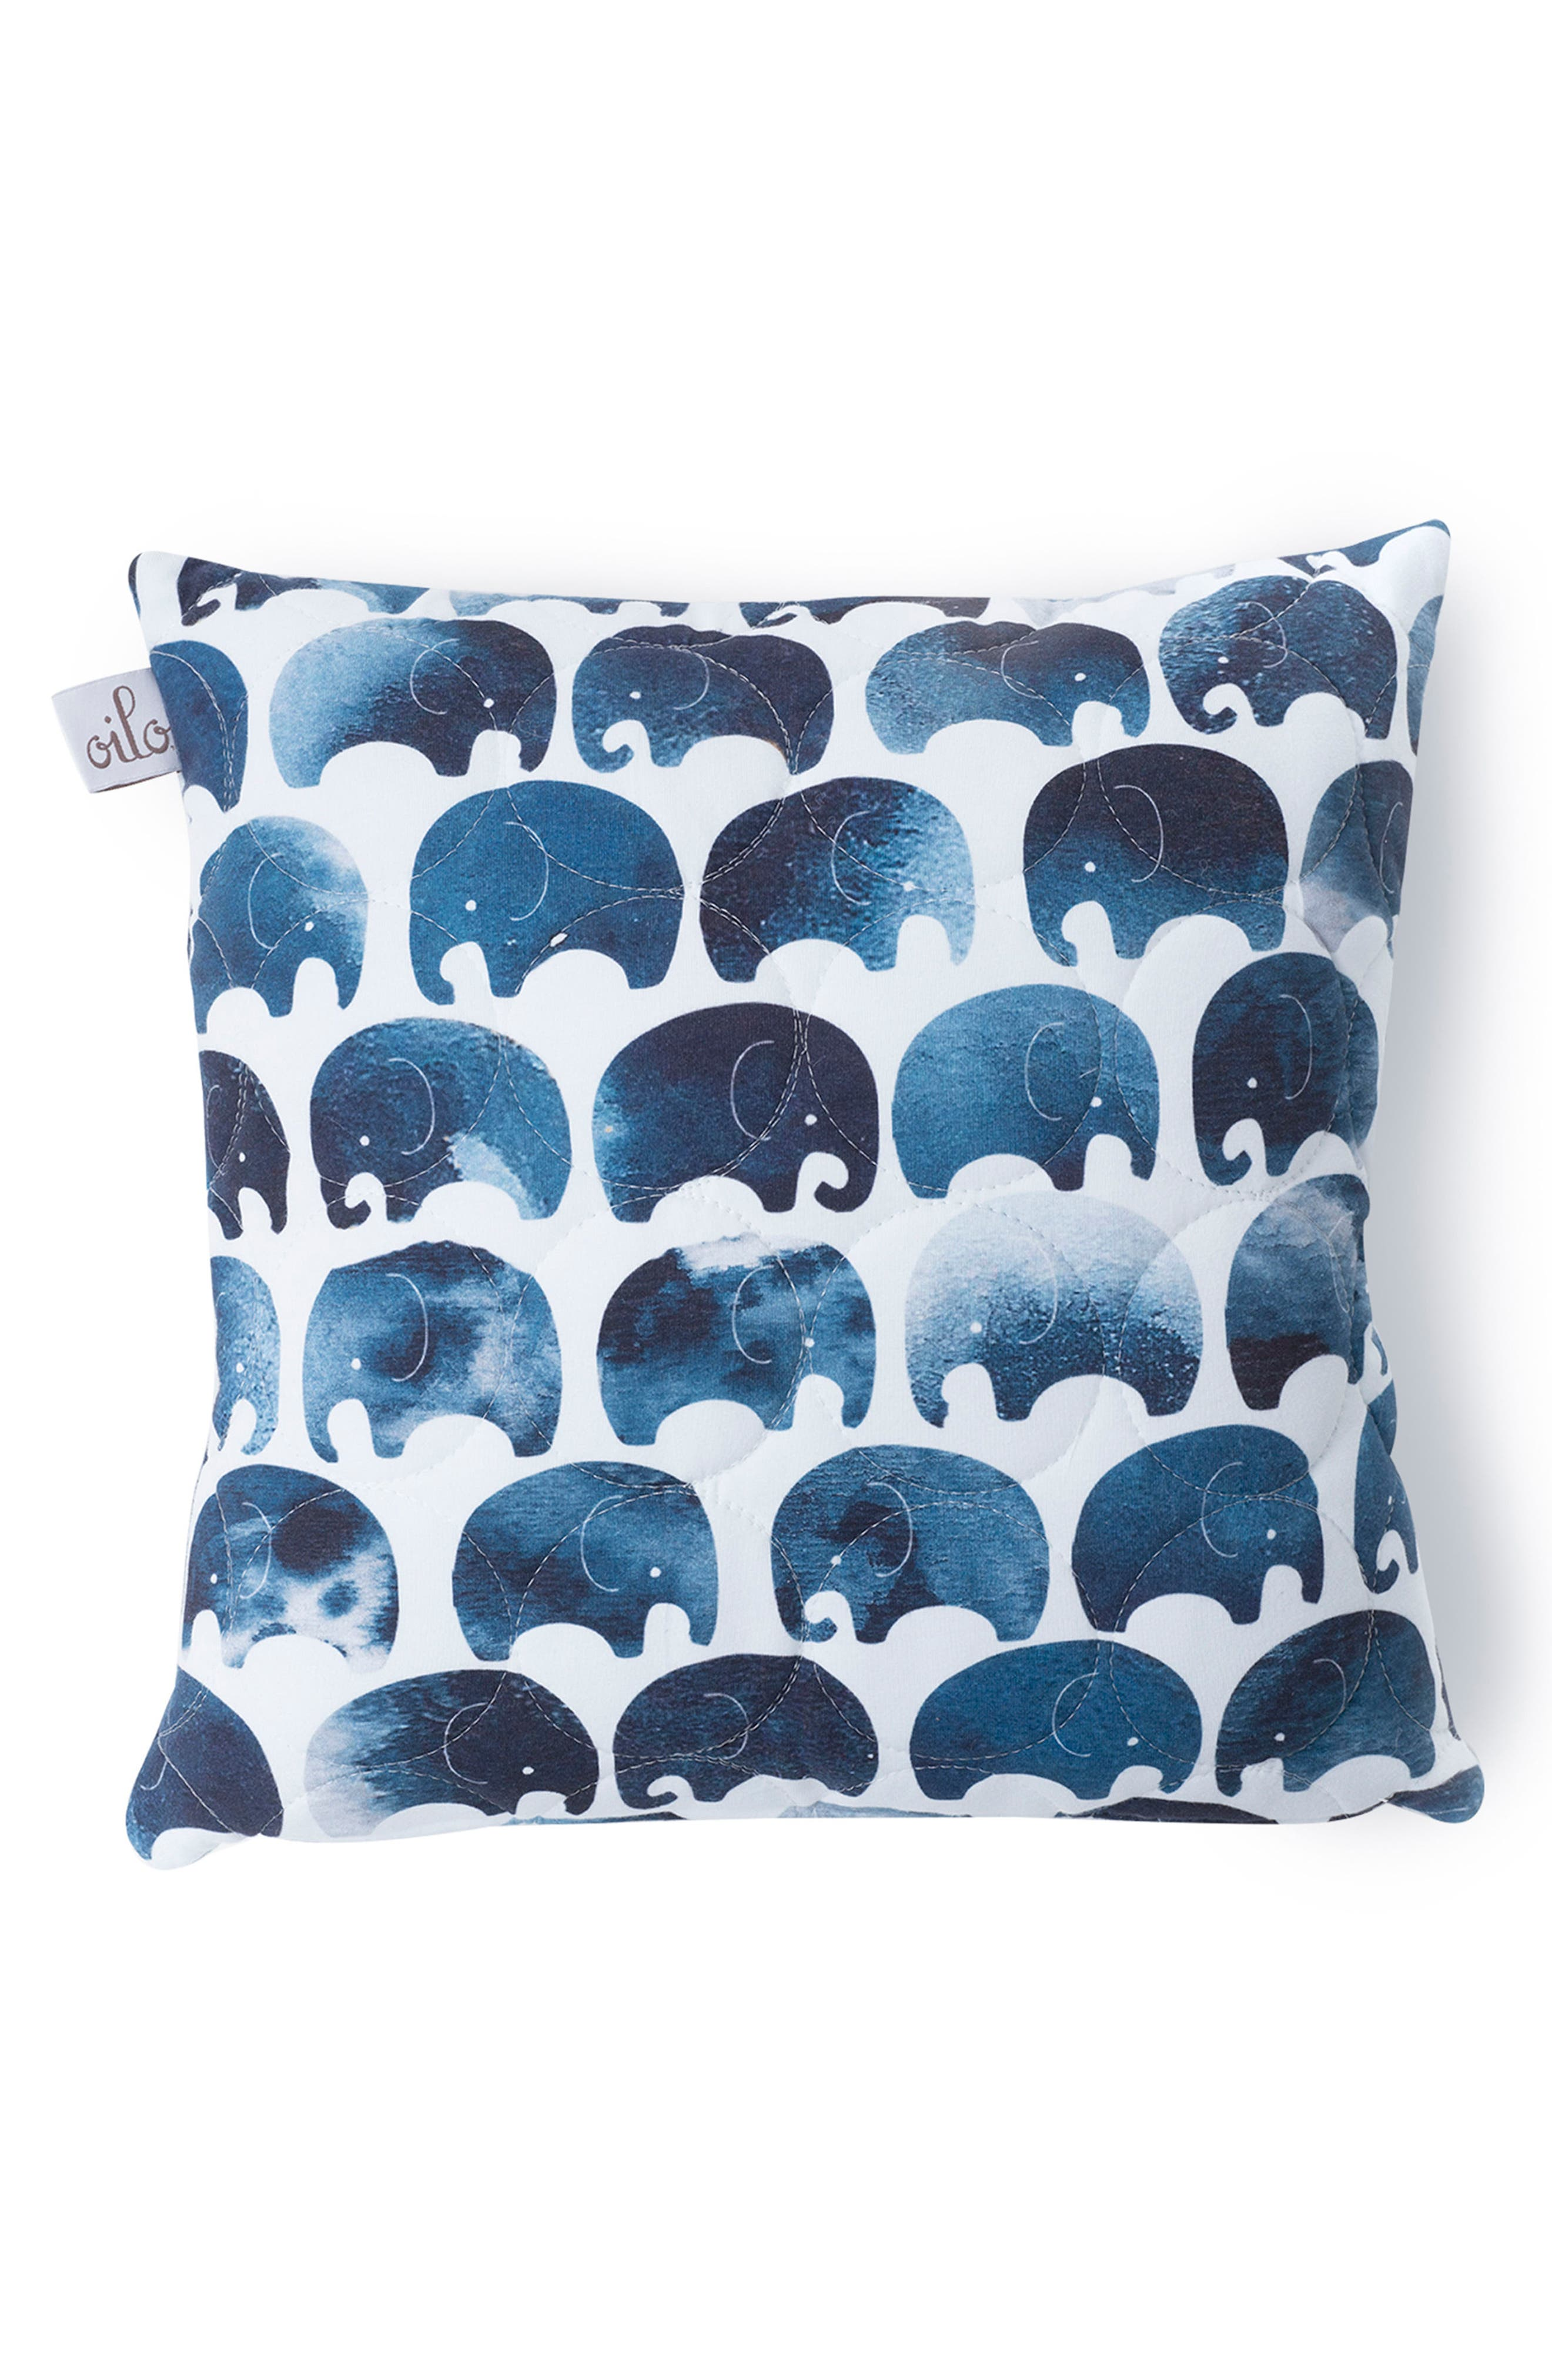 3-Piece Pillow Set,                             Alternate thumbnail 4, color,                             Elefant